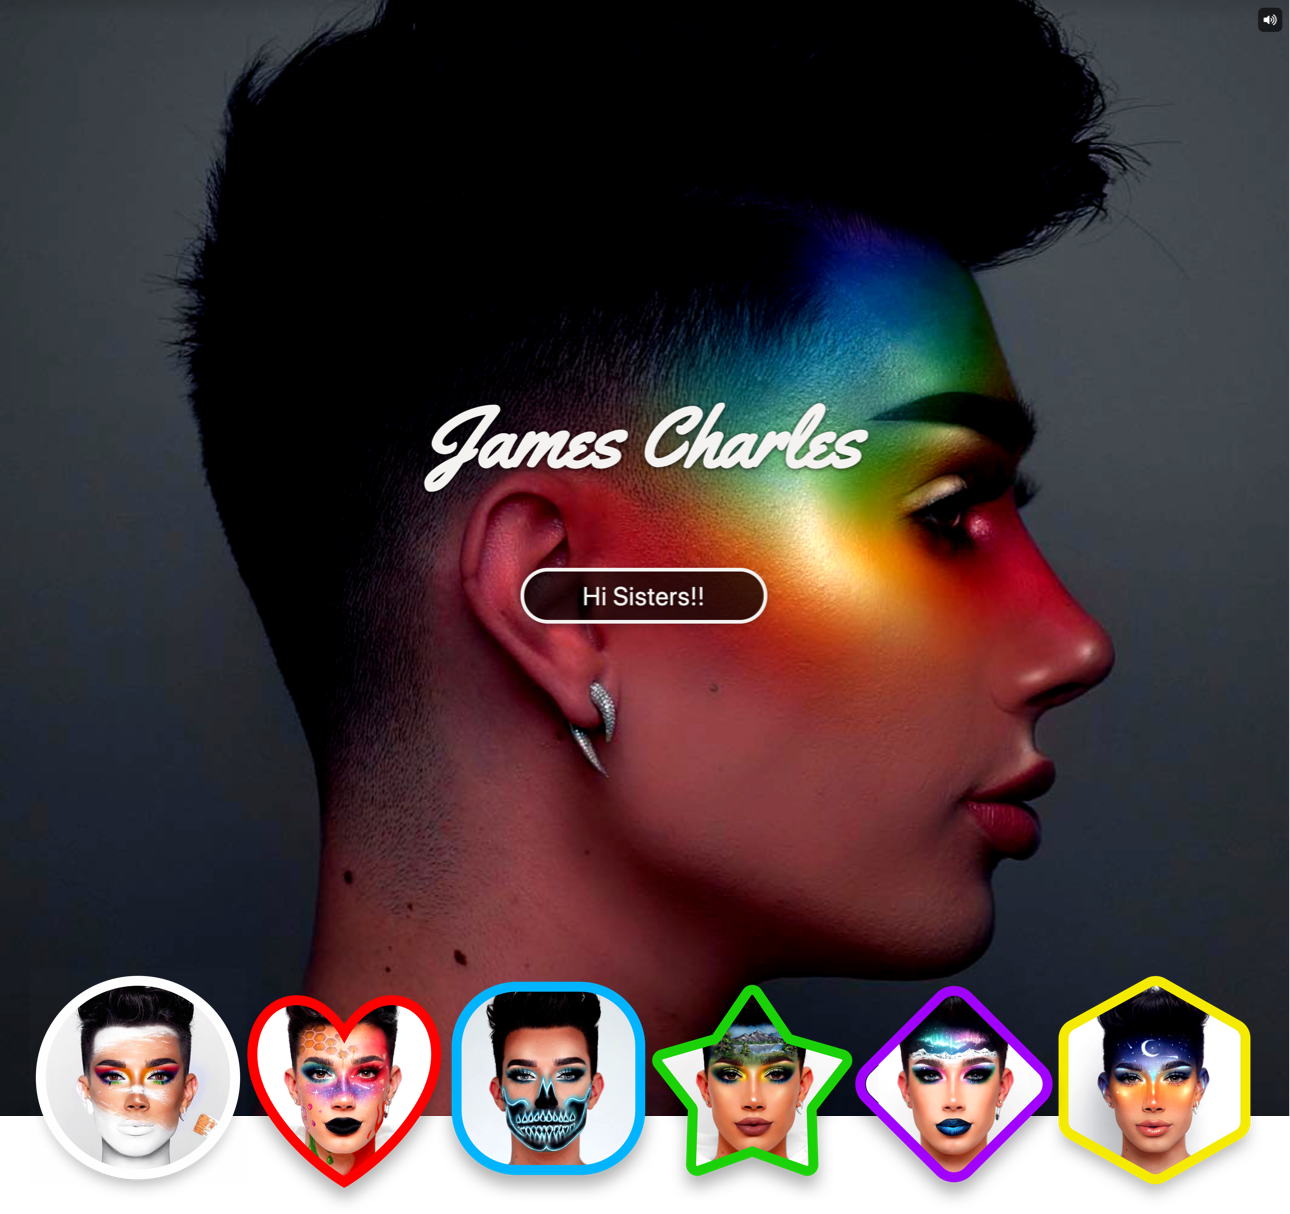 Paul Yanez James Charles Youtube Influencer Brought to life in Games